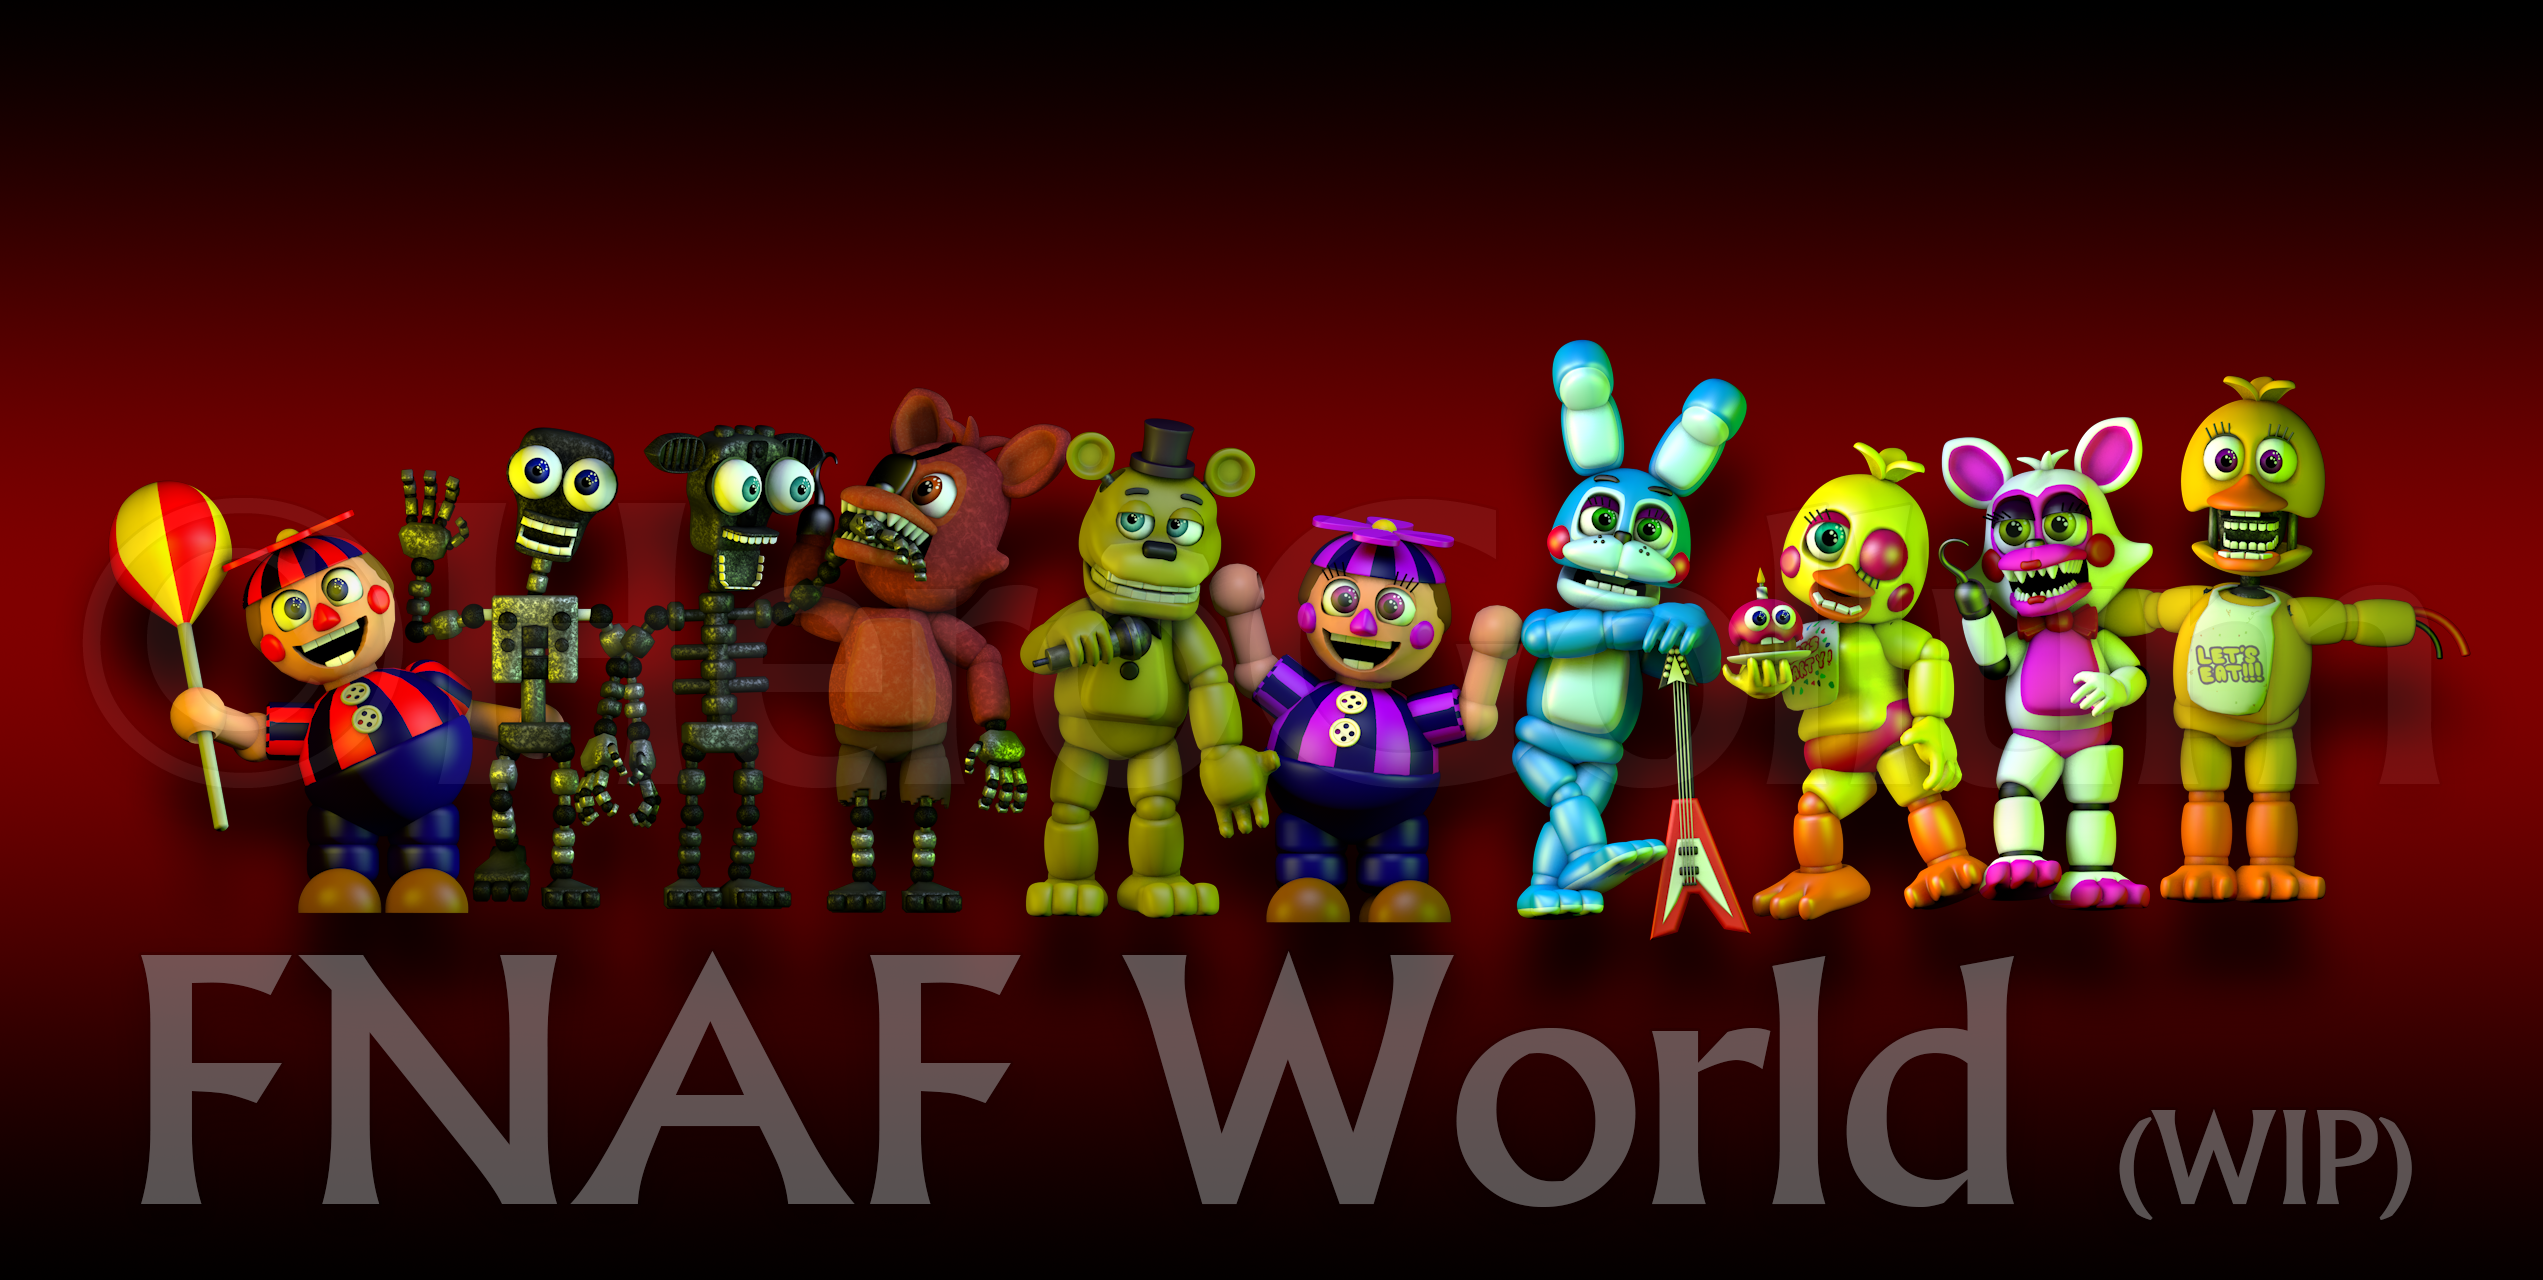 For details fnaf fnaf world free download demo view original